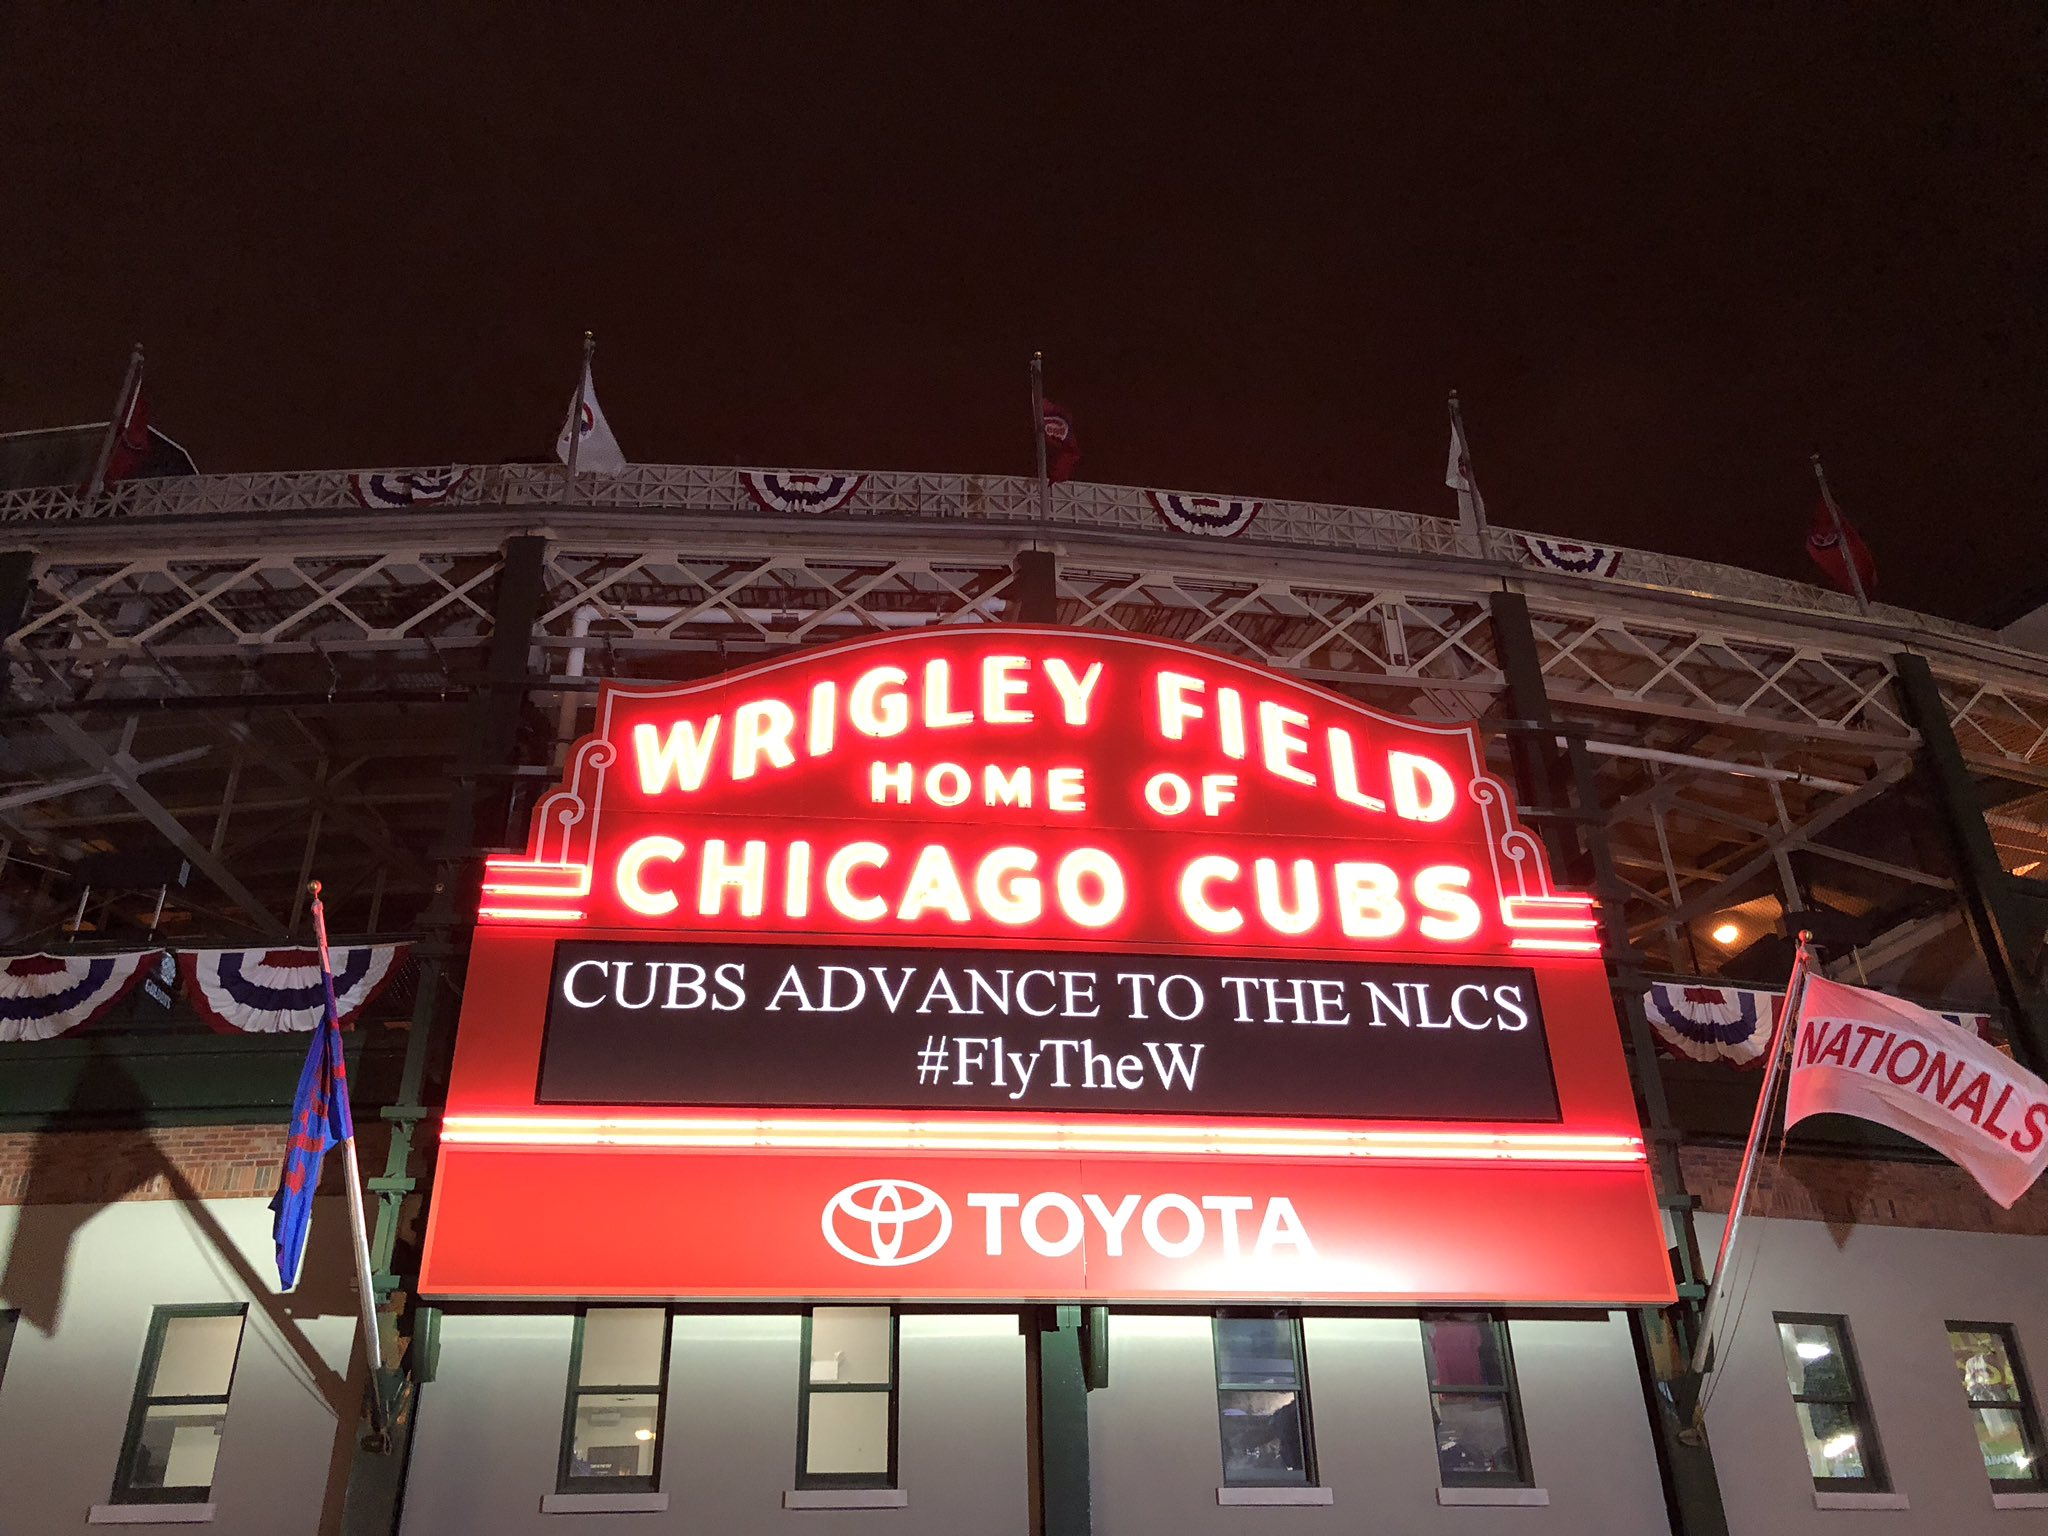 News travels fast. #FlyTheW https://t.co/b8vwU1eiZP